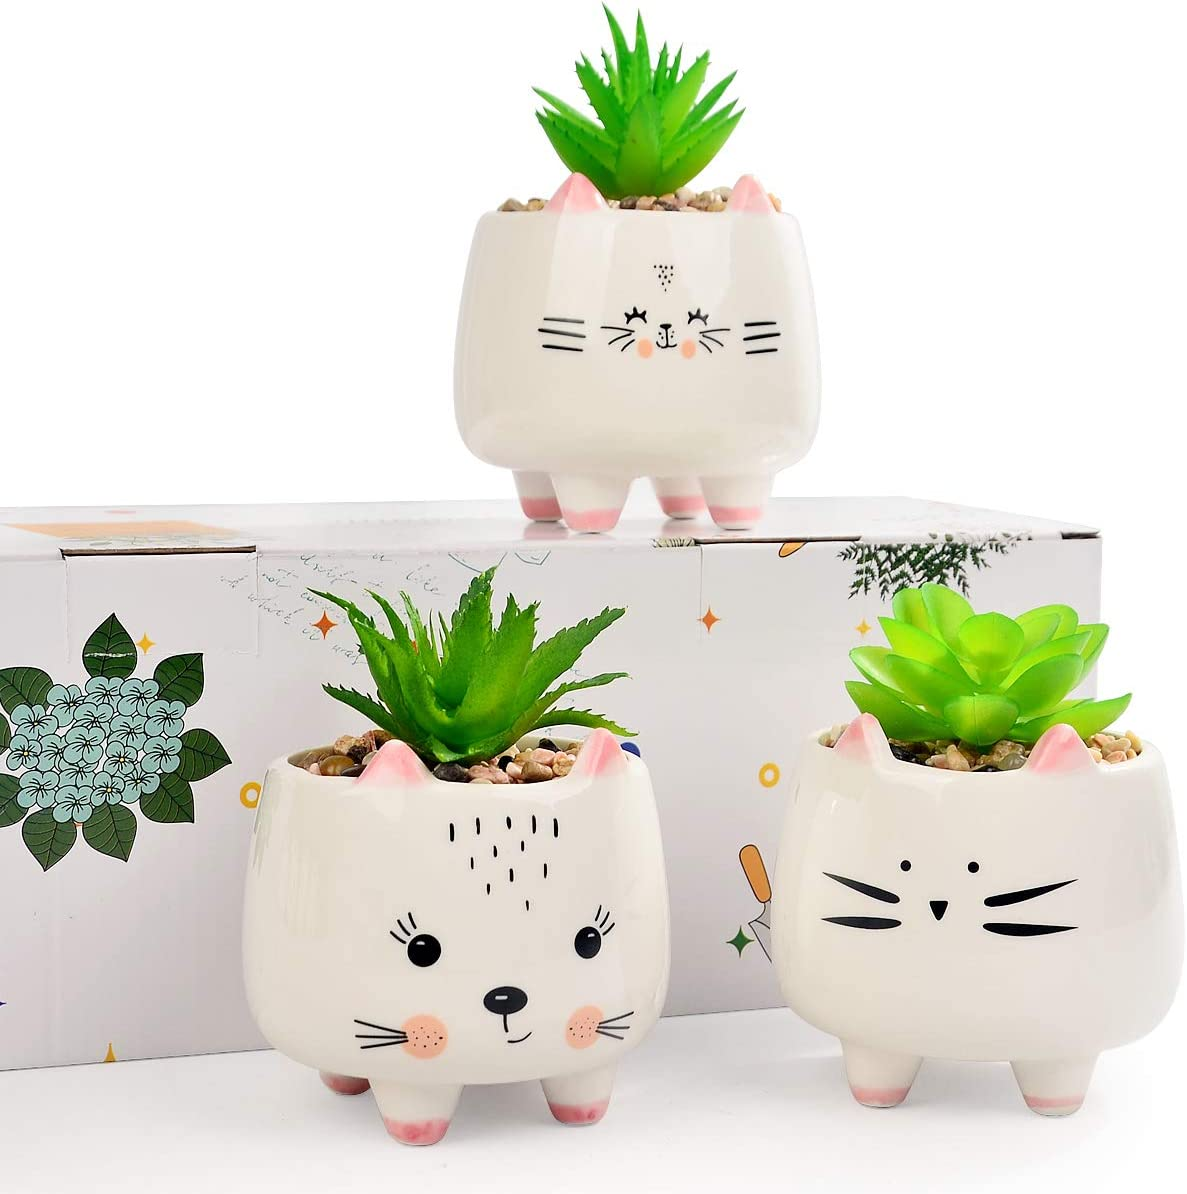 3 Cat Emotion Face Small Artificial Succulents Potted with White Porcelain Pots Ceramic Animal Planter Gift Set for Home and Office Decor (Pussy Cat)